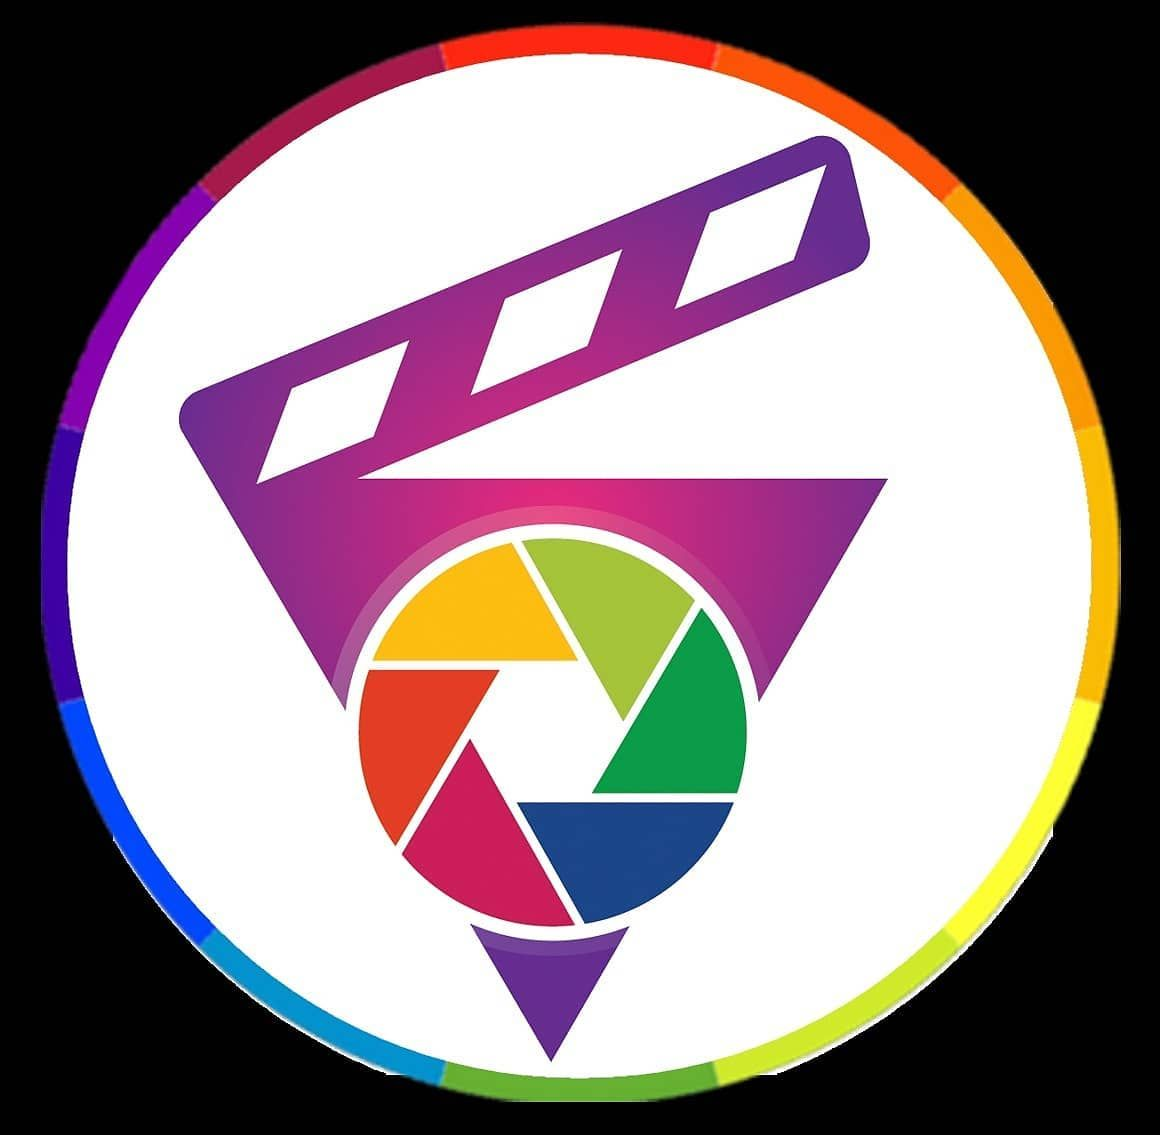 Official Logo For Tmmarcovtv Channel Official Account Tmmarcovtv Youtube Youtuber Vlogger Kuwaituptodate Vlog Log Official Account Logos Vlogging